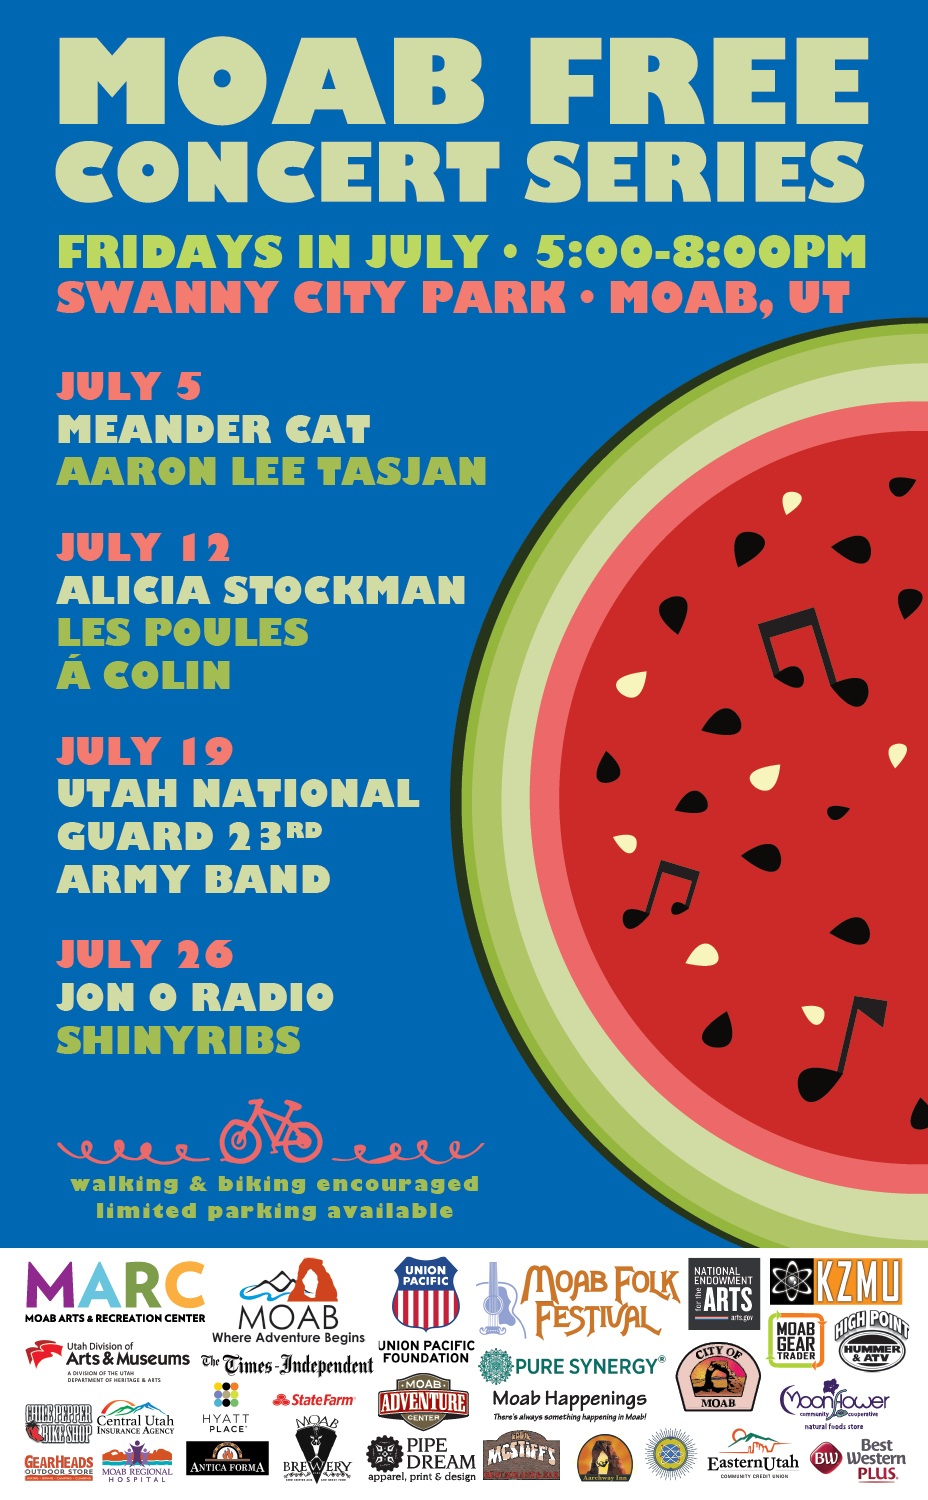 Moab Free Concert Series presents Four Free Concerts in July!